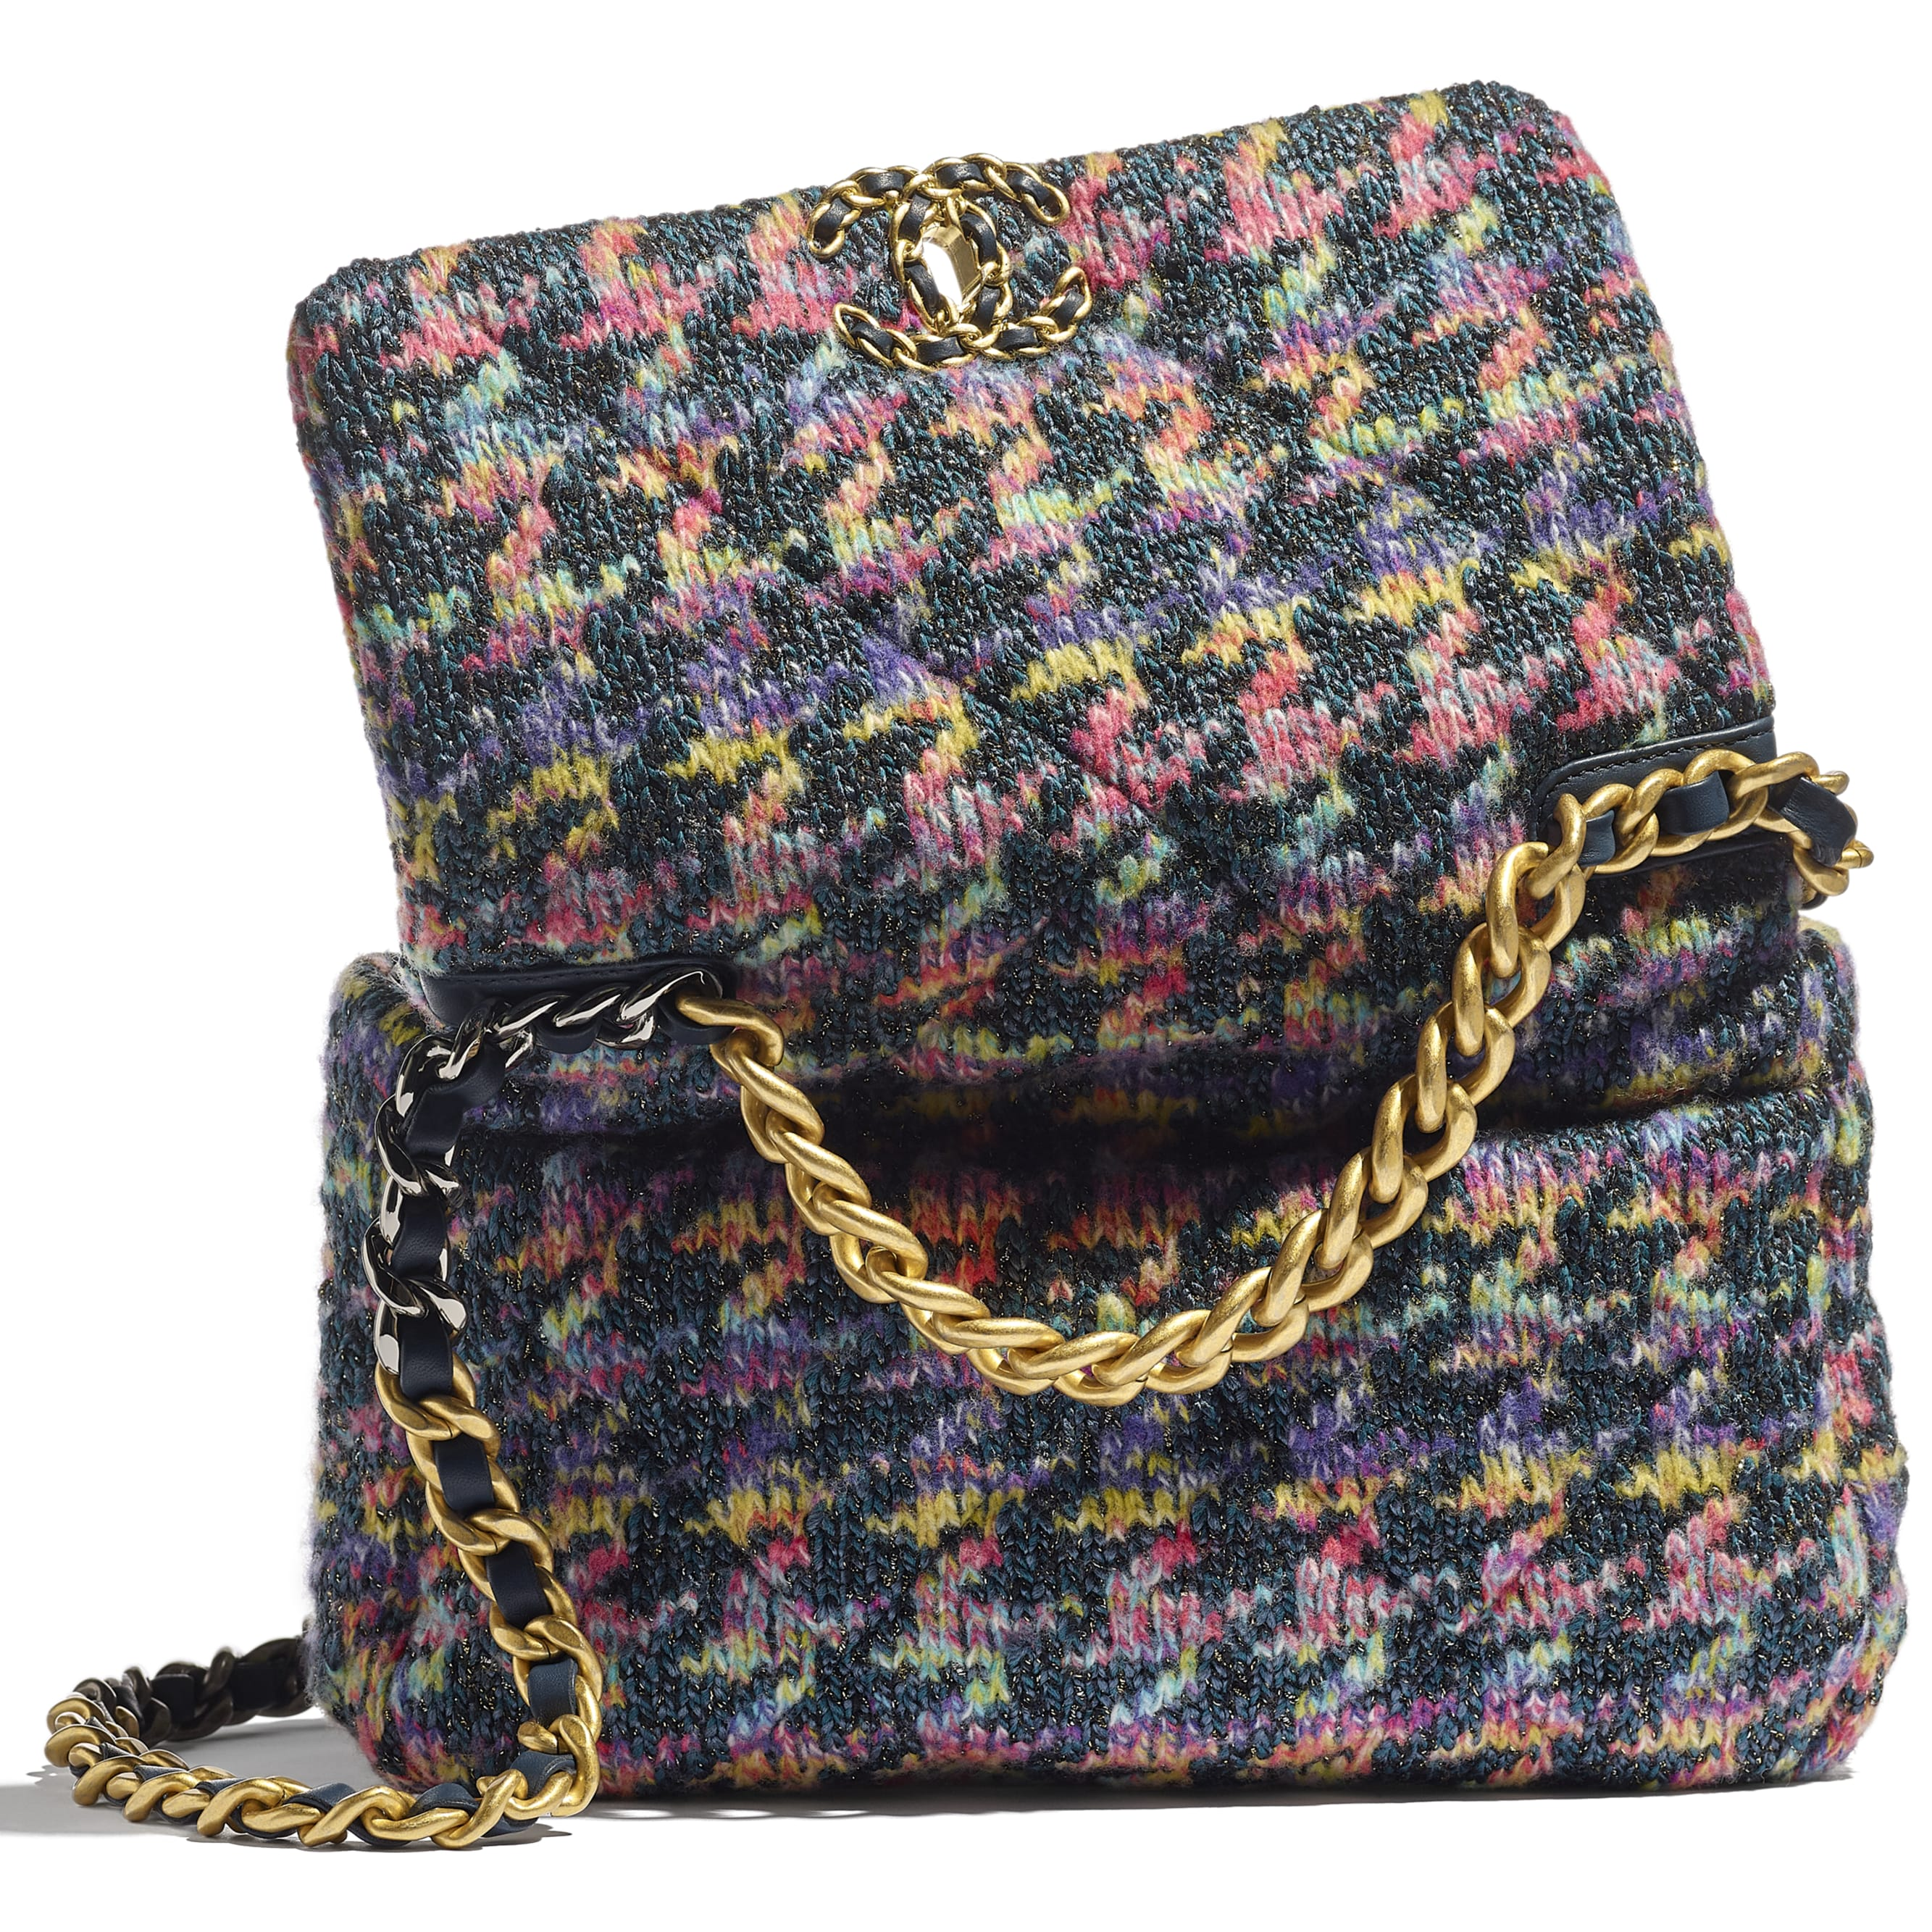 CHANEL 19 Flap Bag - Multicolour - Knit, Gold-Tone, Silver-Tone & Ruthenium-Finish Metal - CHANEL - Extra view - see standard sized version